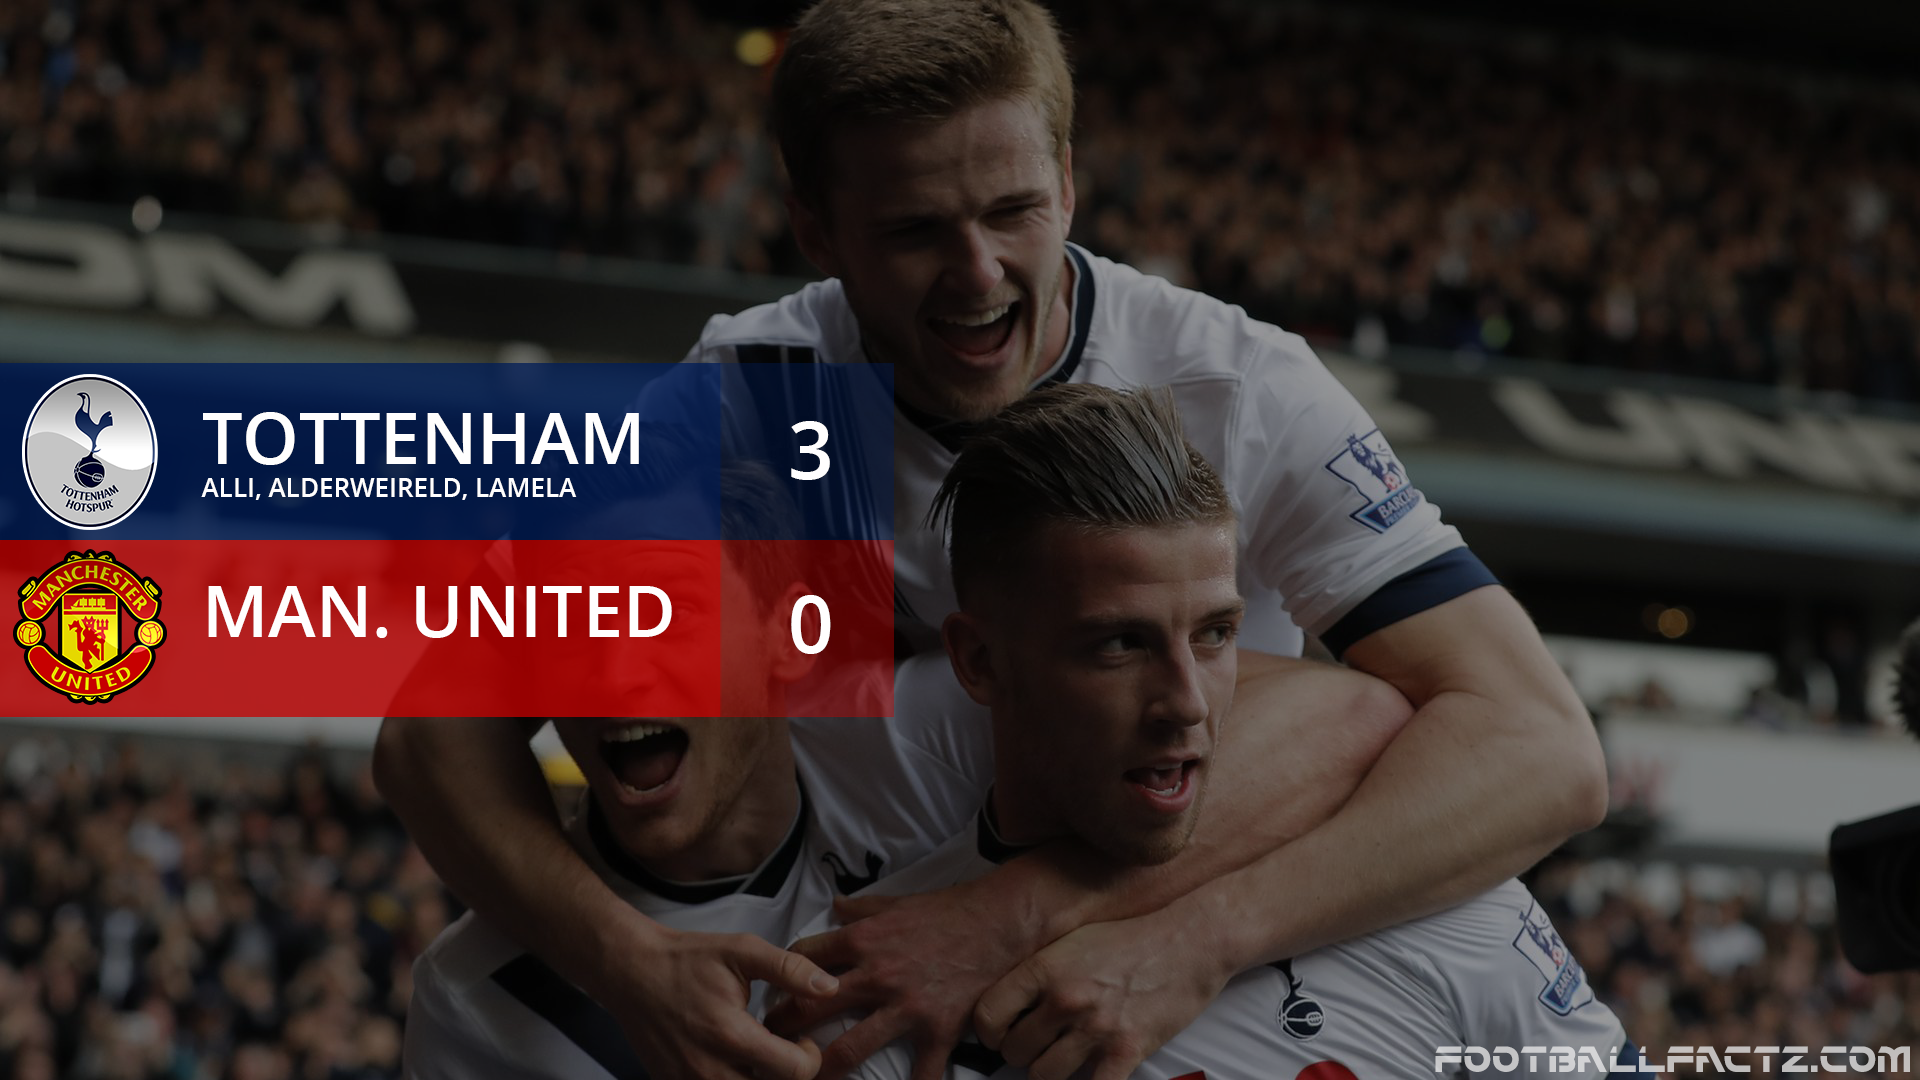 Tottenham 3 - 0 Manchester United, Premier League